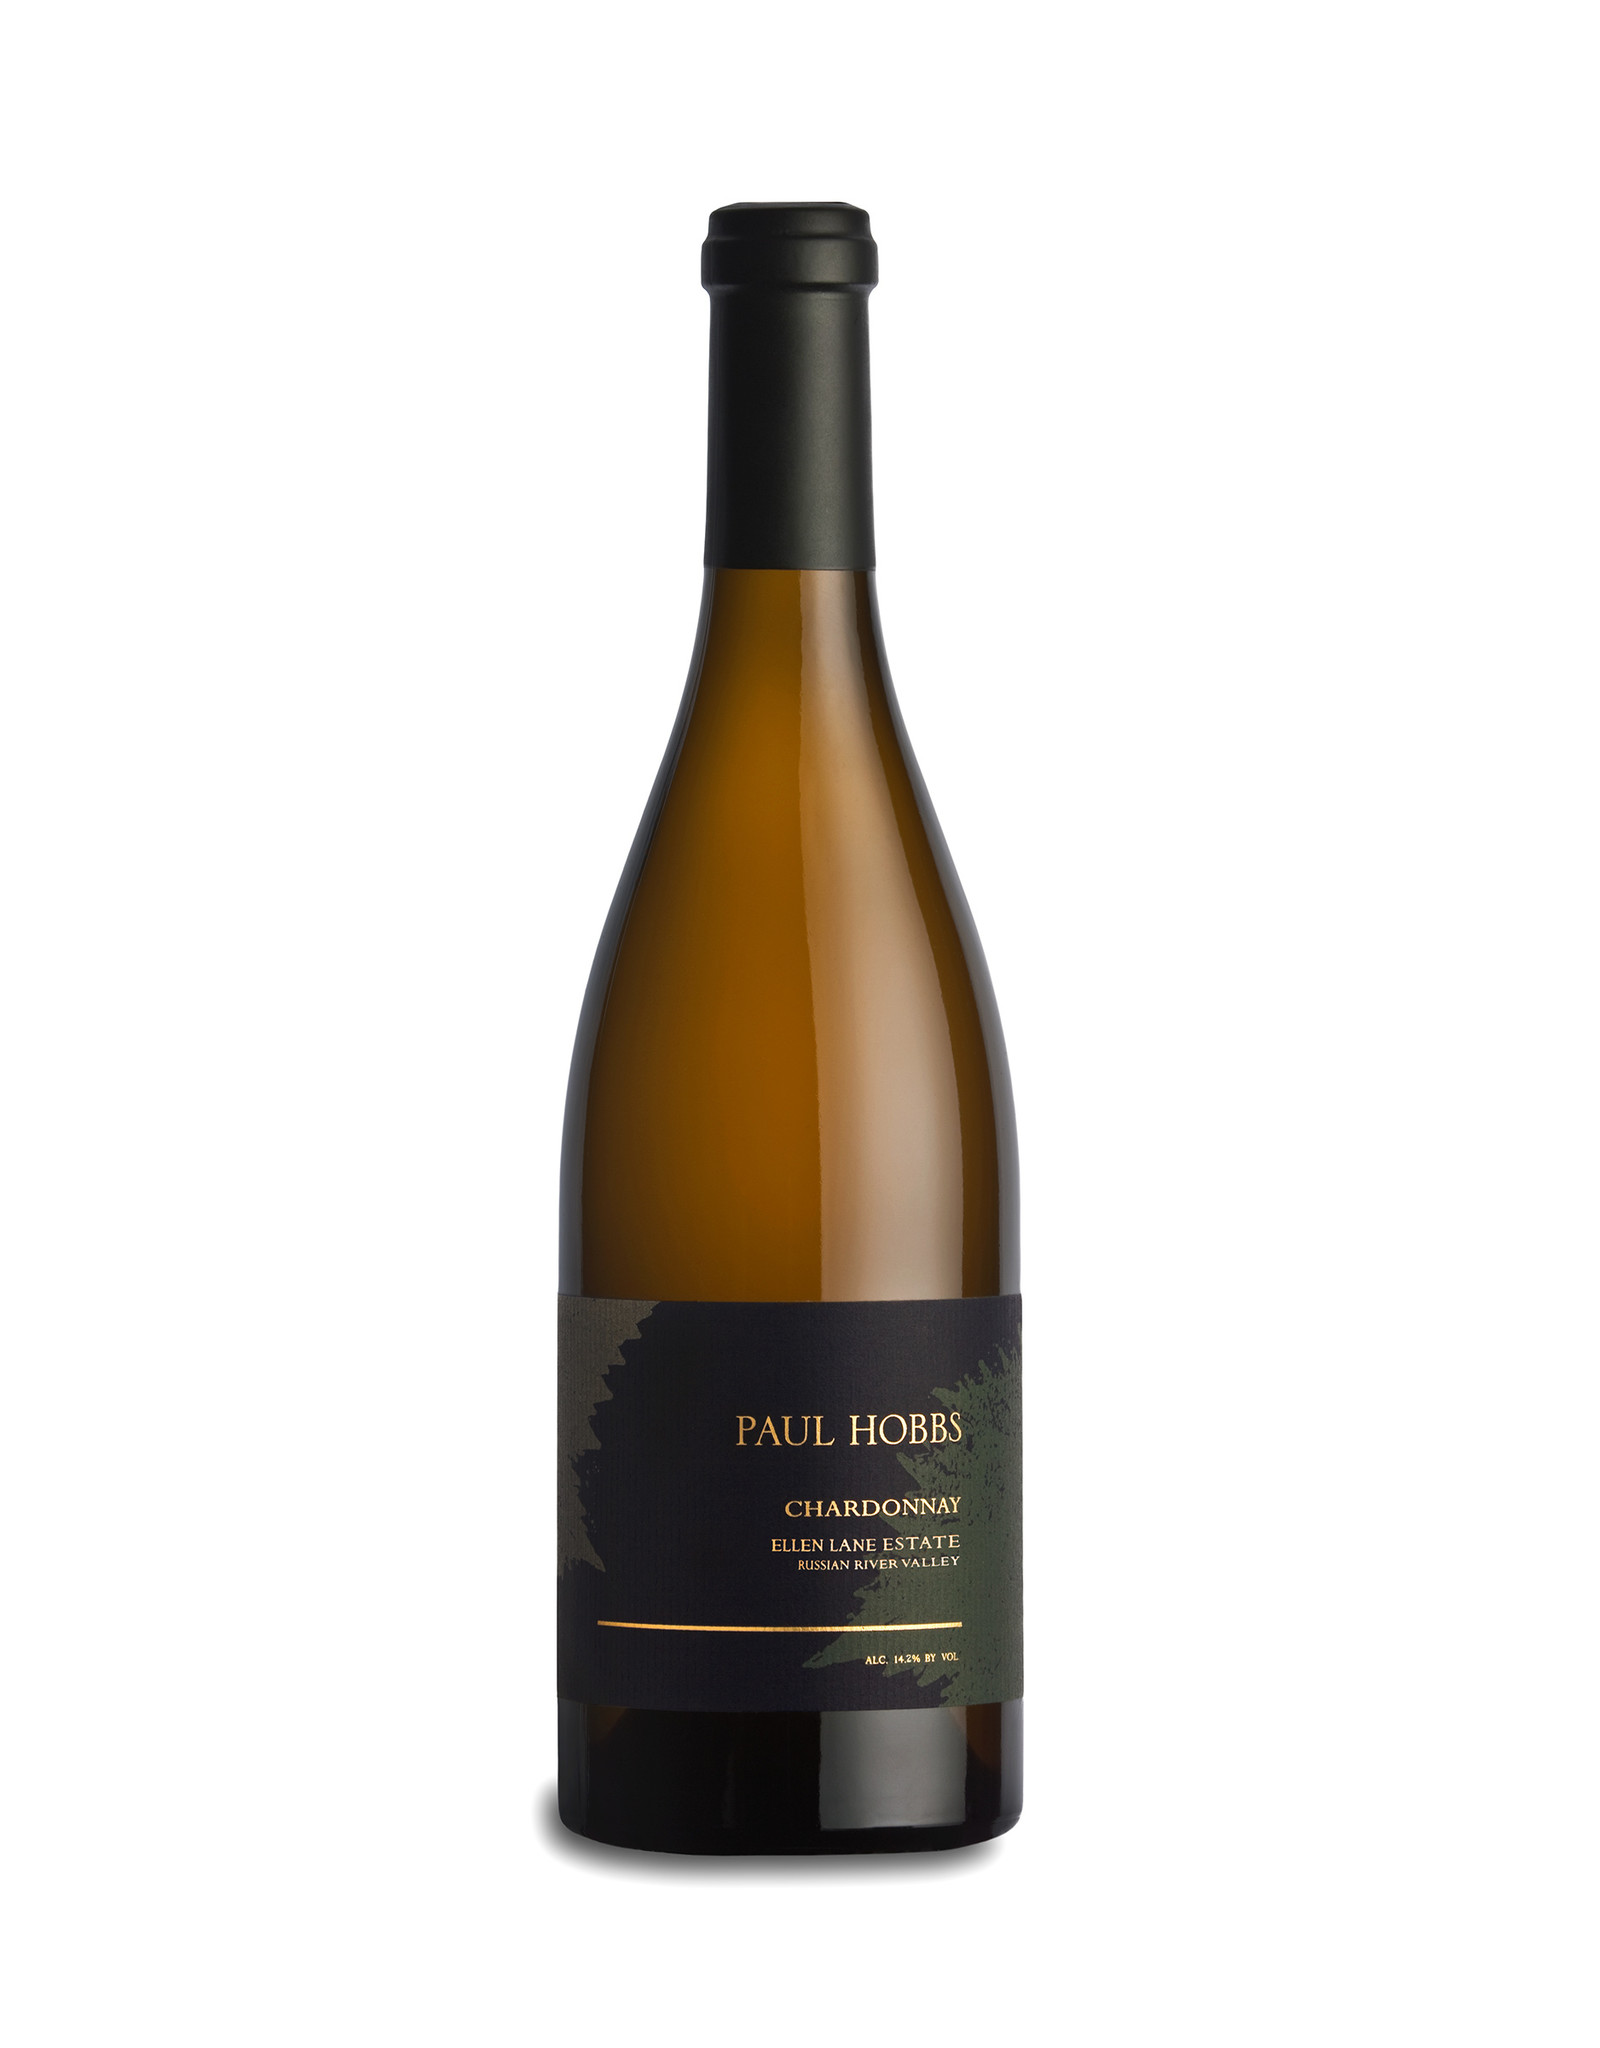 Paul Hobbs 'Ellen Lane' Chardonnay, Russian River Valley, Sonoma County 2015